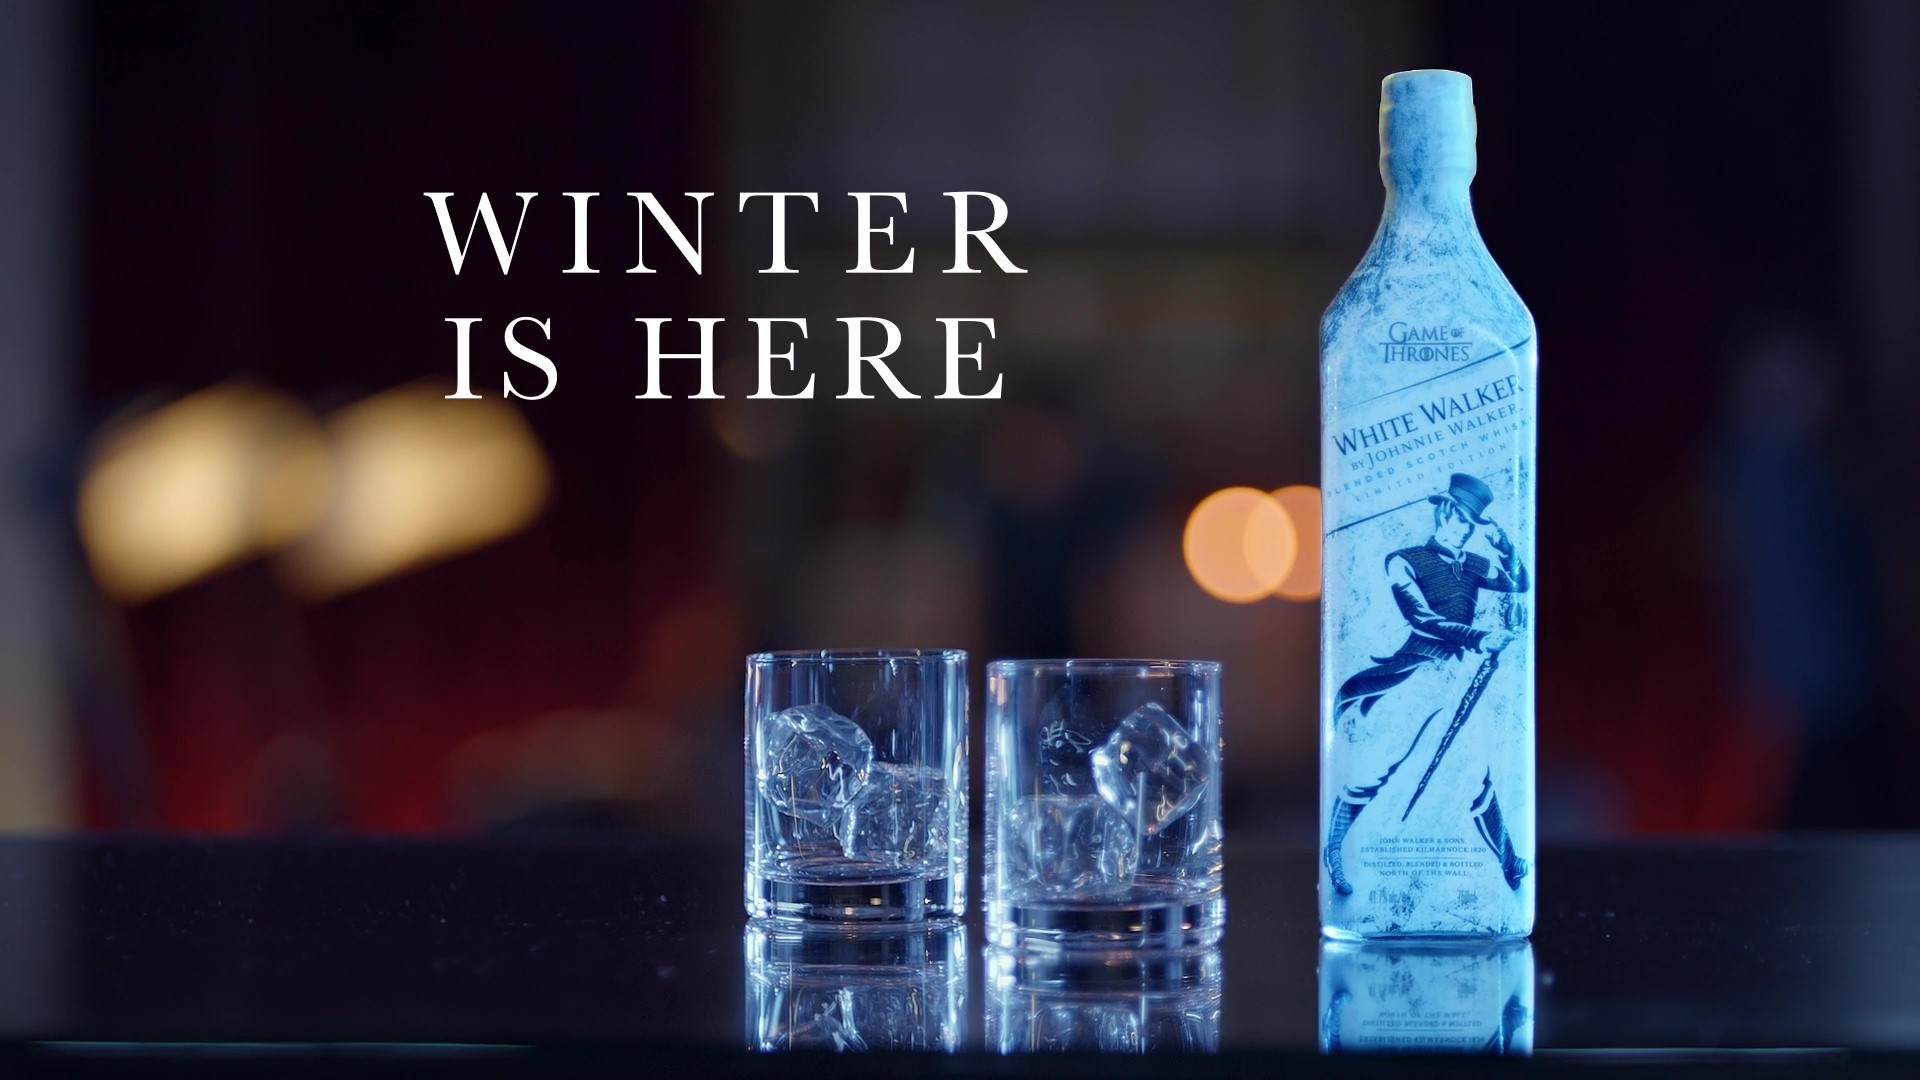 Johnnie Walker Launches White Walker Whisky For Game Of Thrones